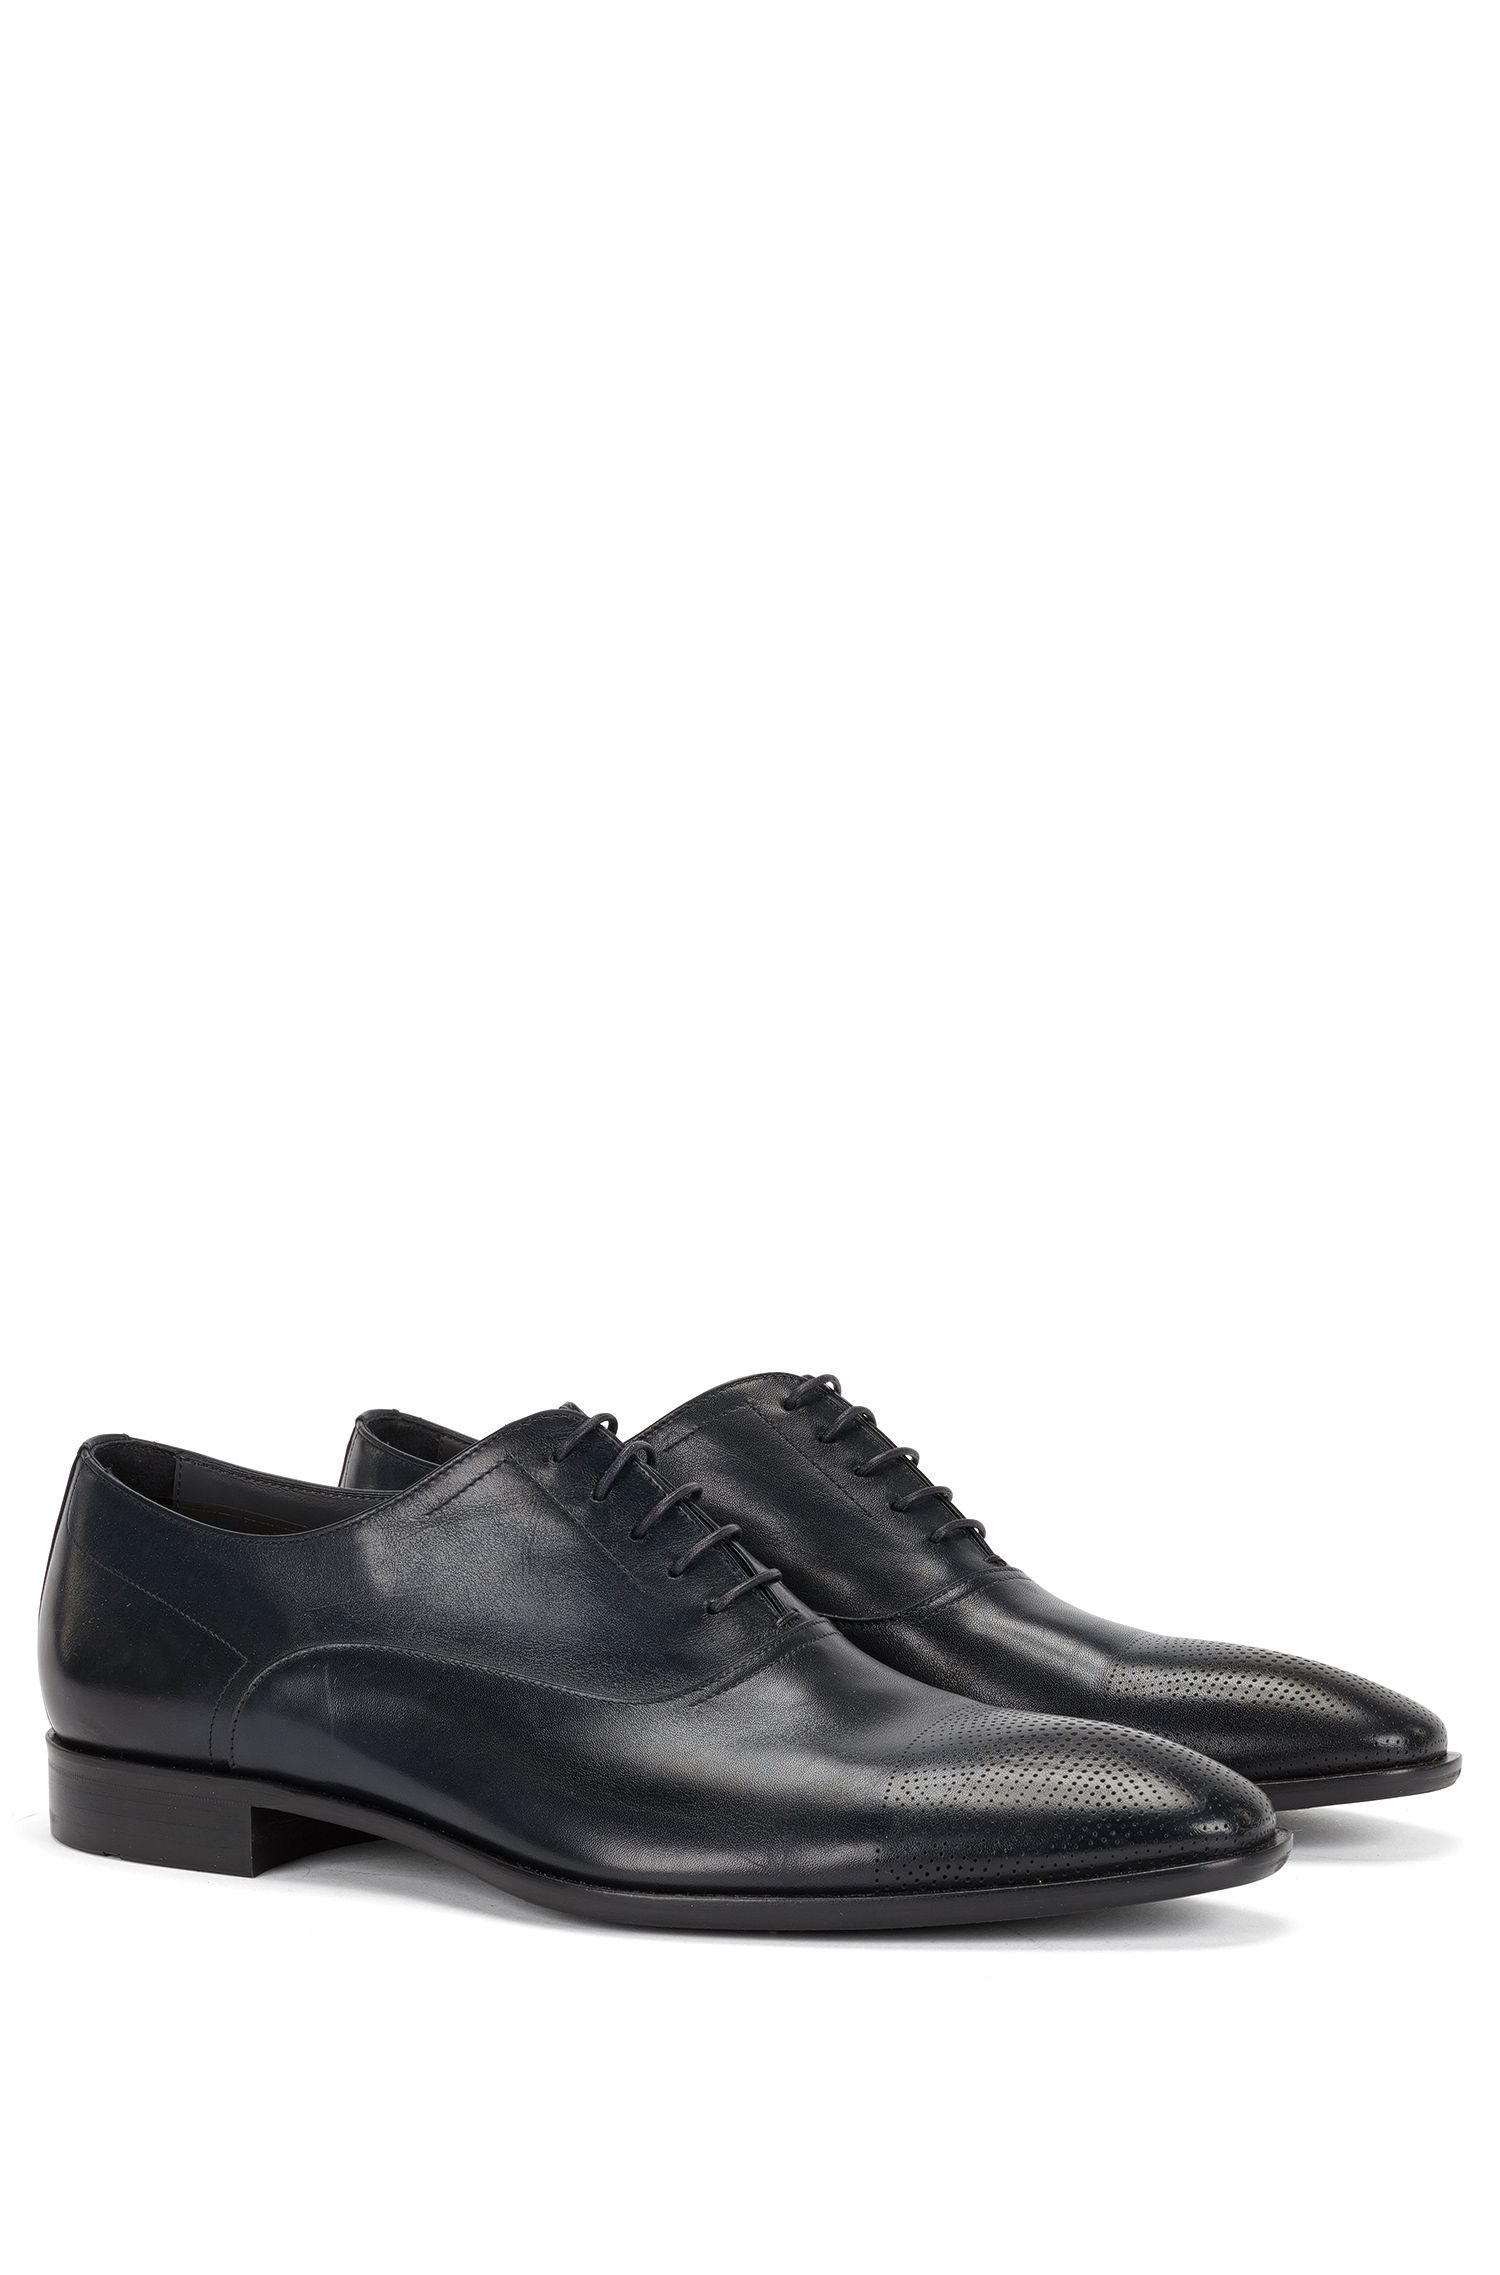 'Chelsea Oxfr ltct' | Italian Leather Oxford Dress Shoes